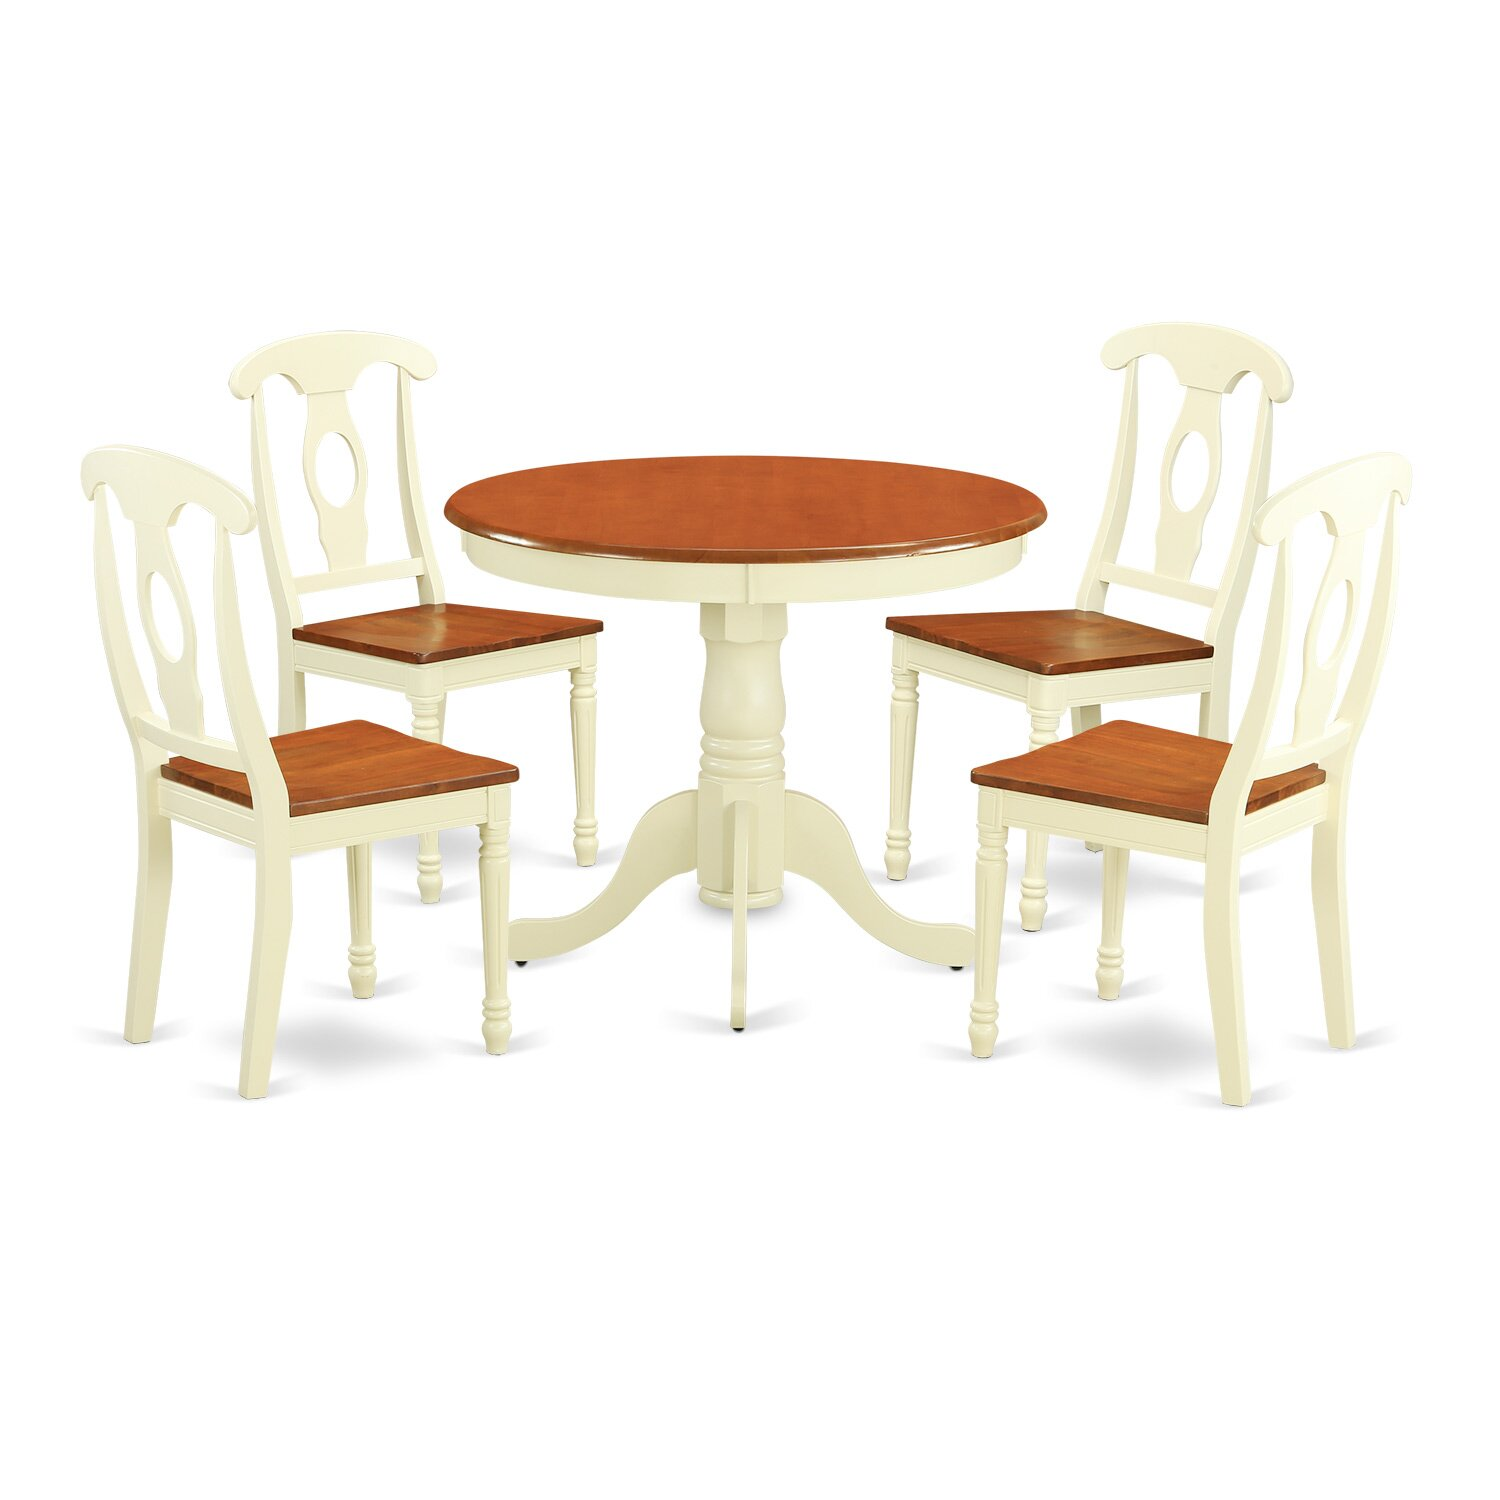 East west 5 piece dining set wayfair for Kitchen dining furniture